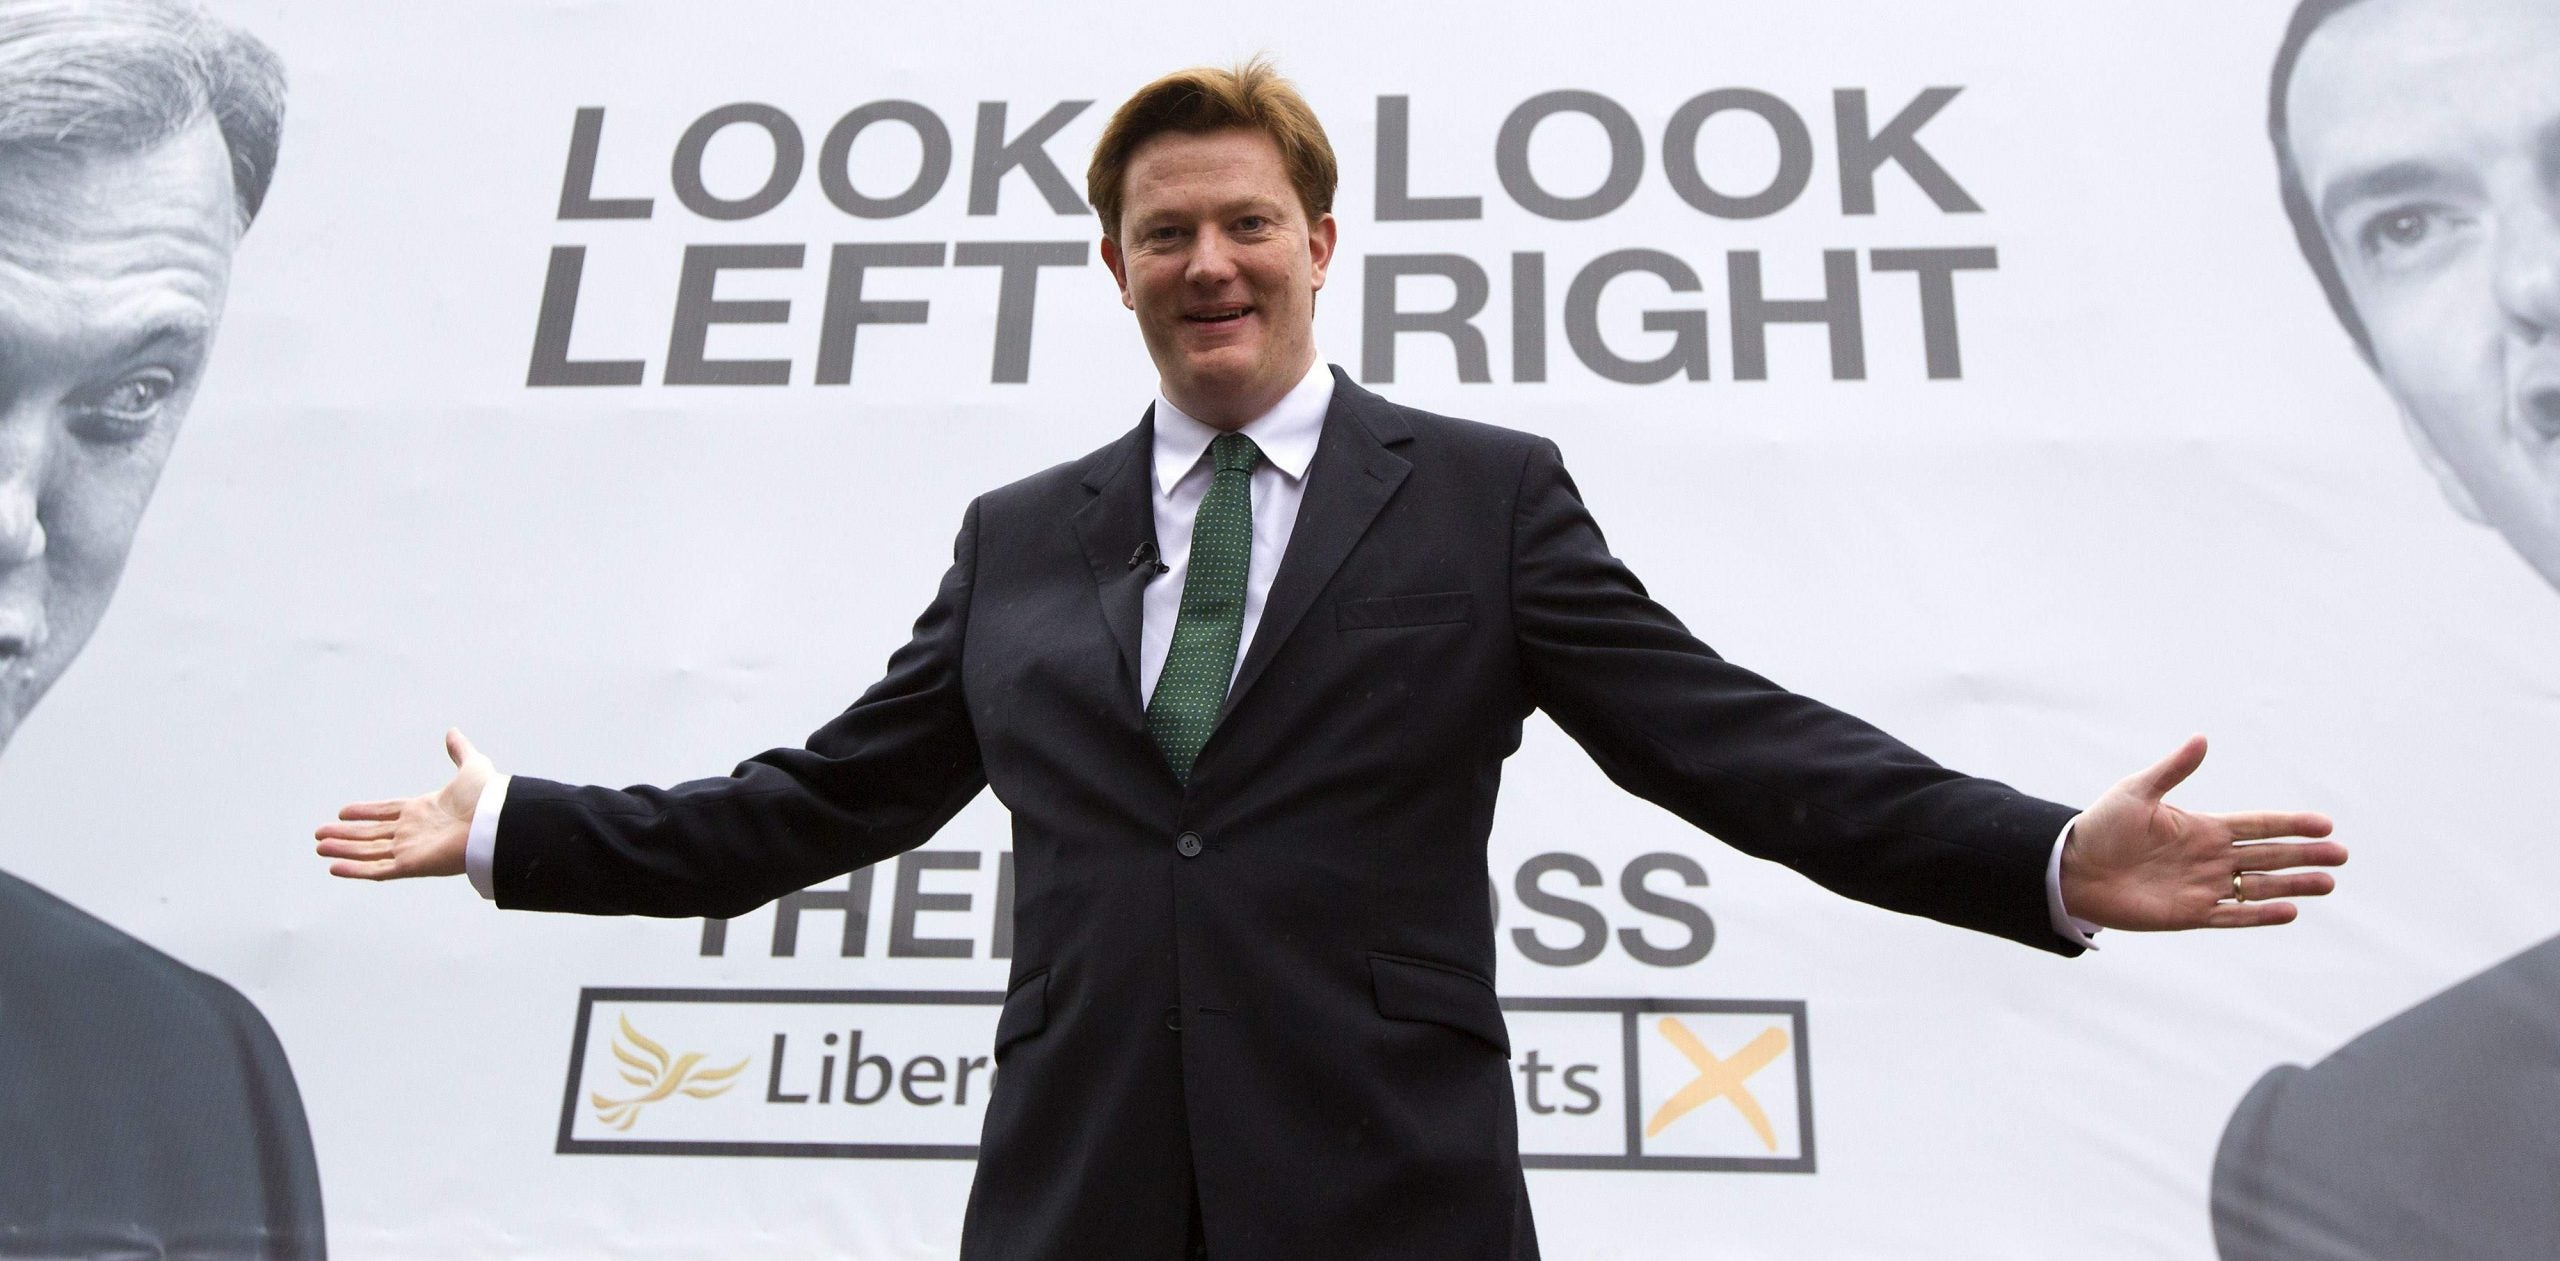 Danny Alexander: the Lib Dems and Labour must avoid becoming a soggy Syriza in sandals